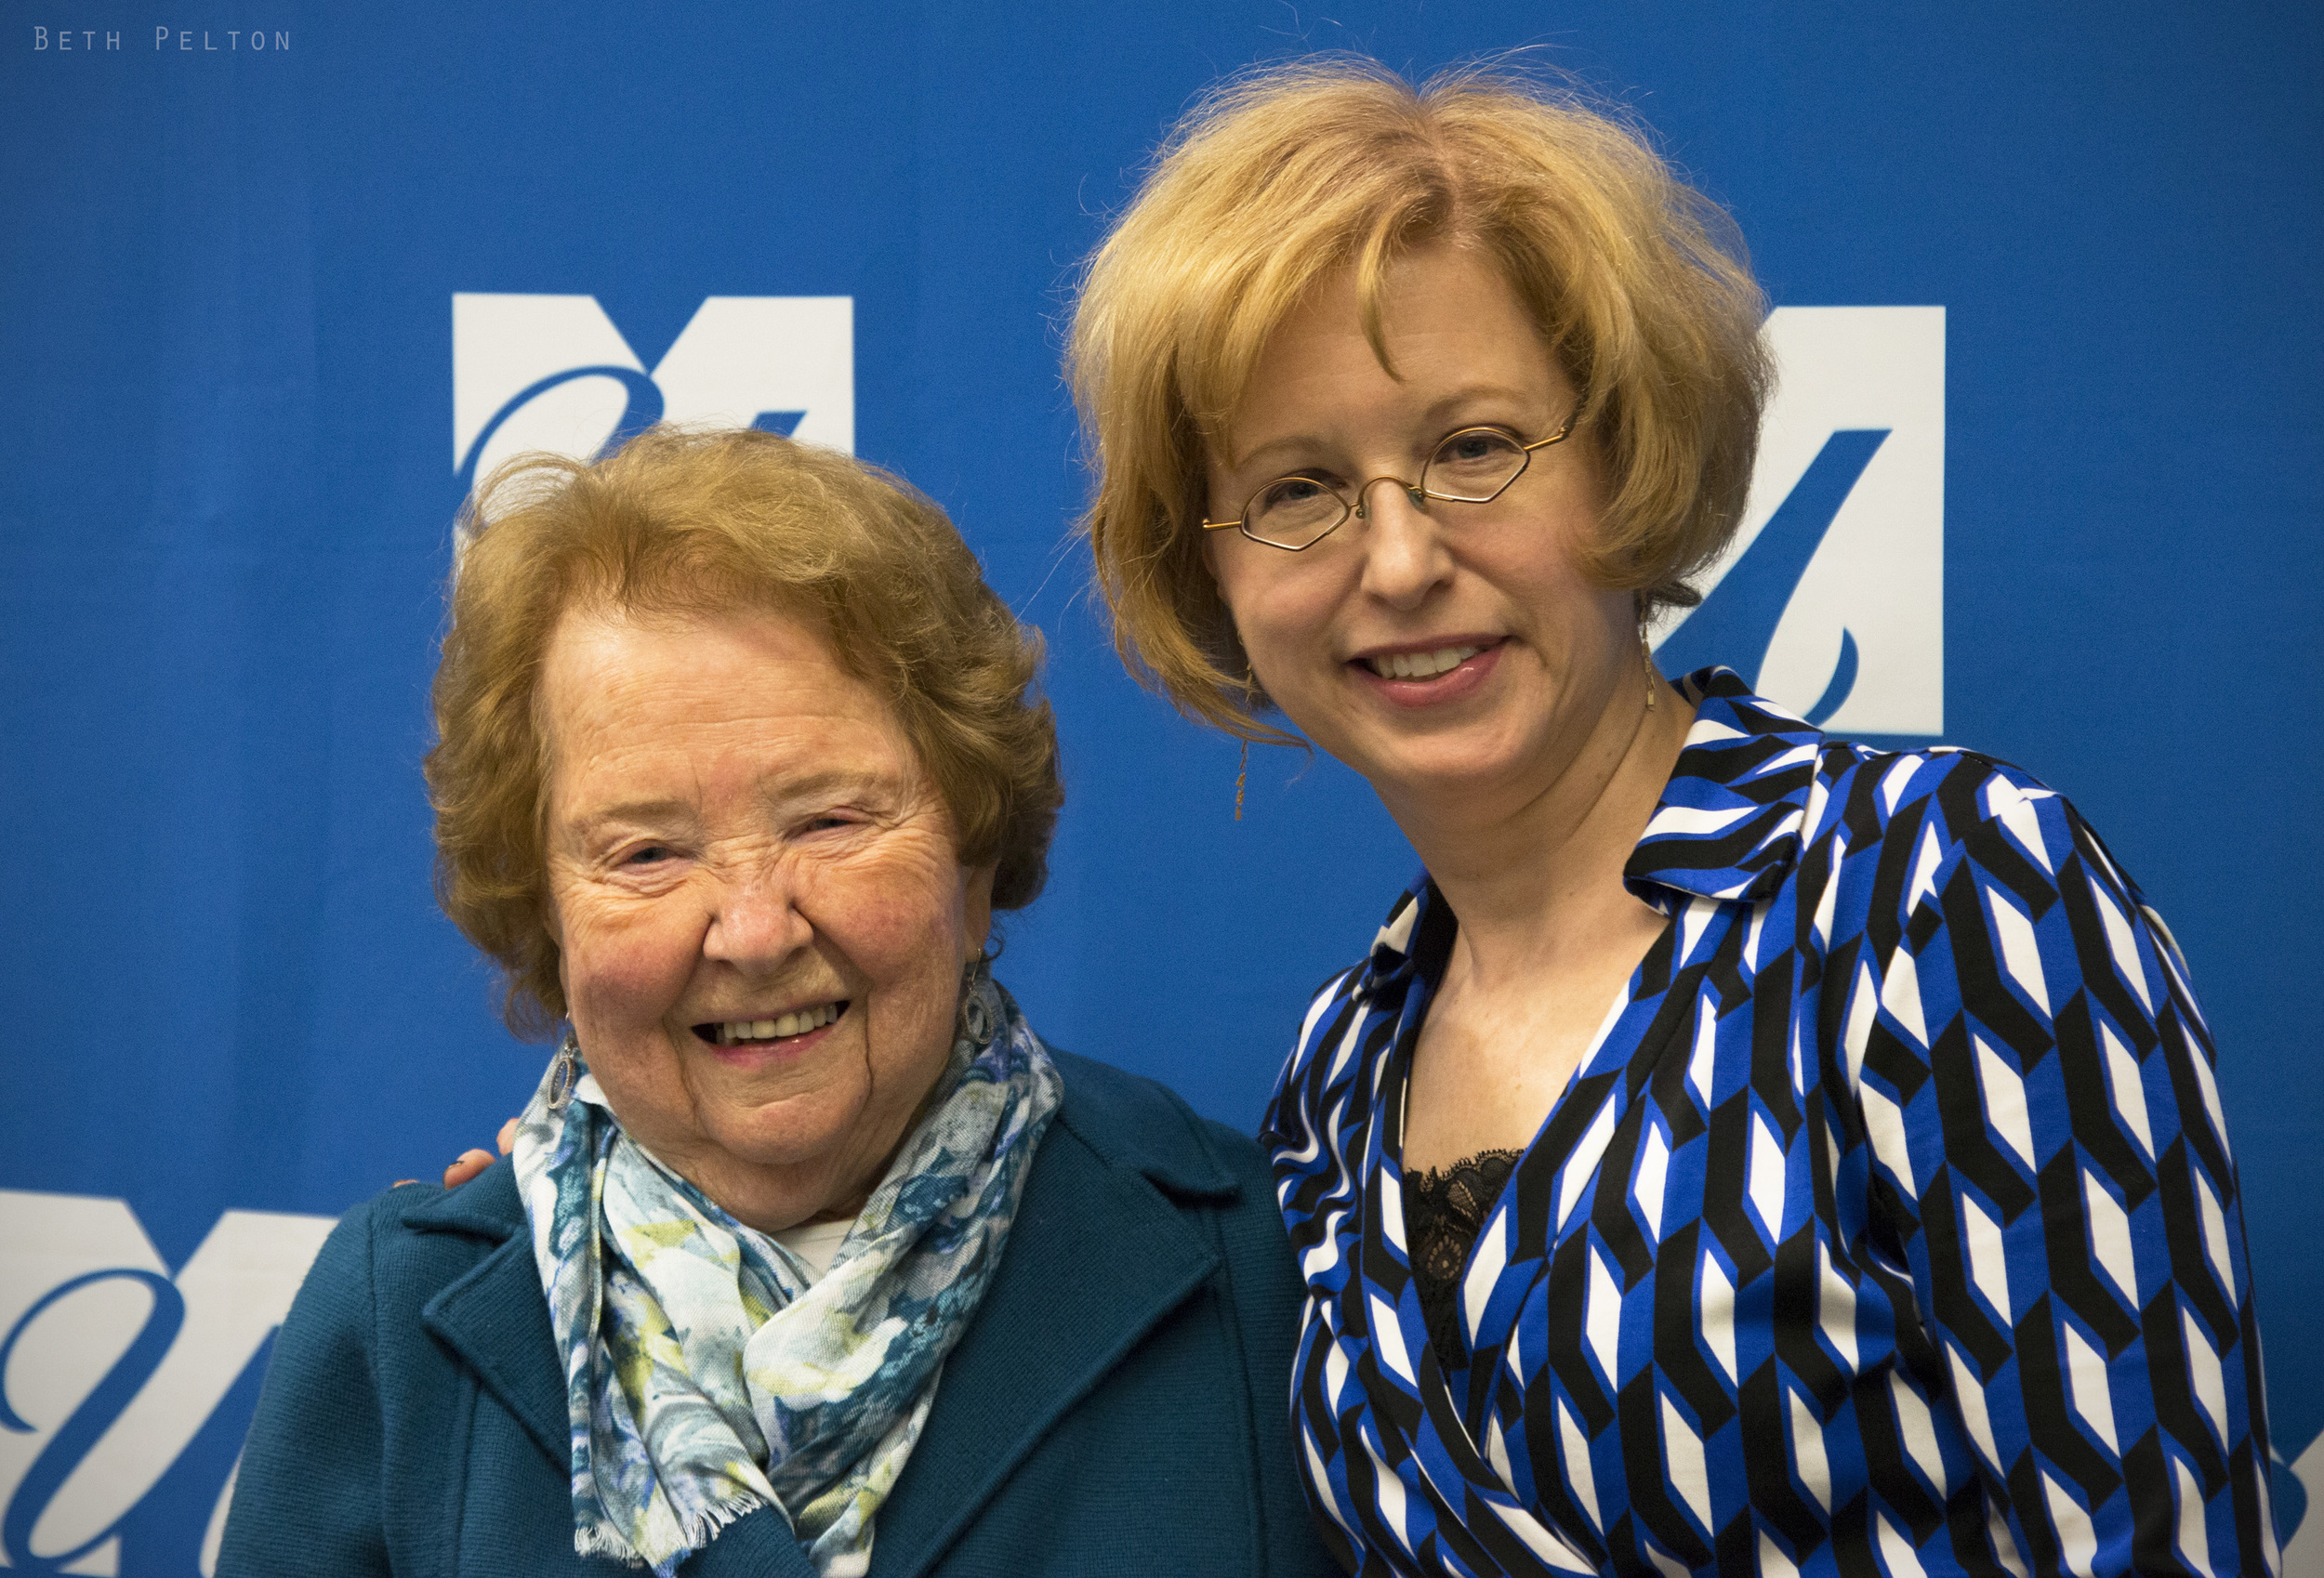 Here's Linda with her 93-year-old mother, Rose.